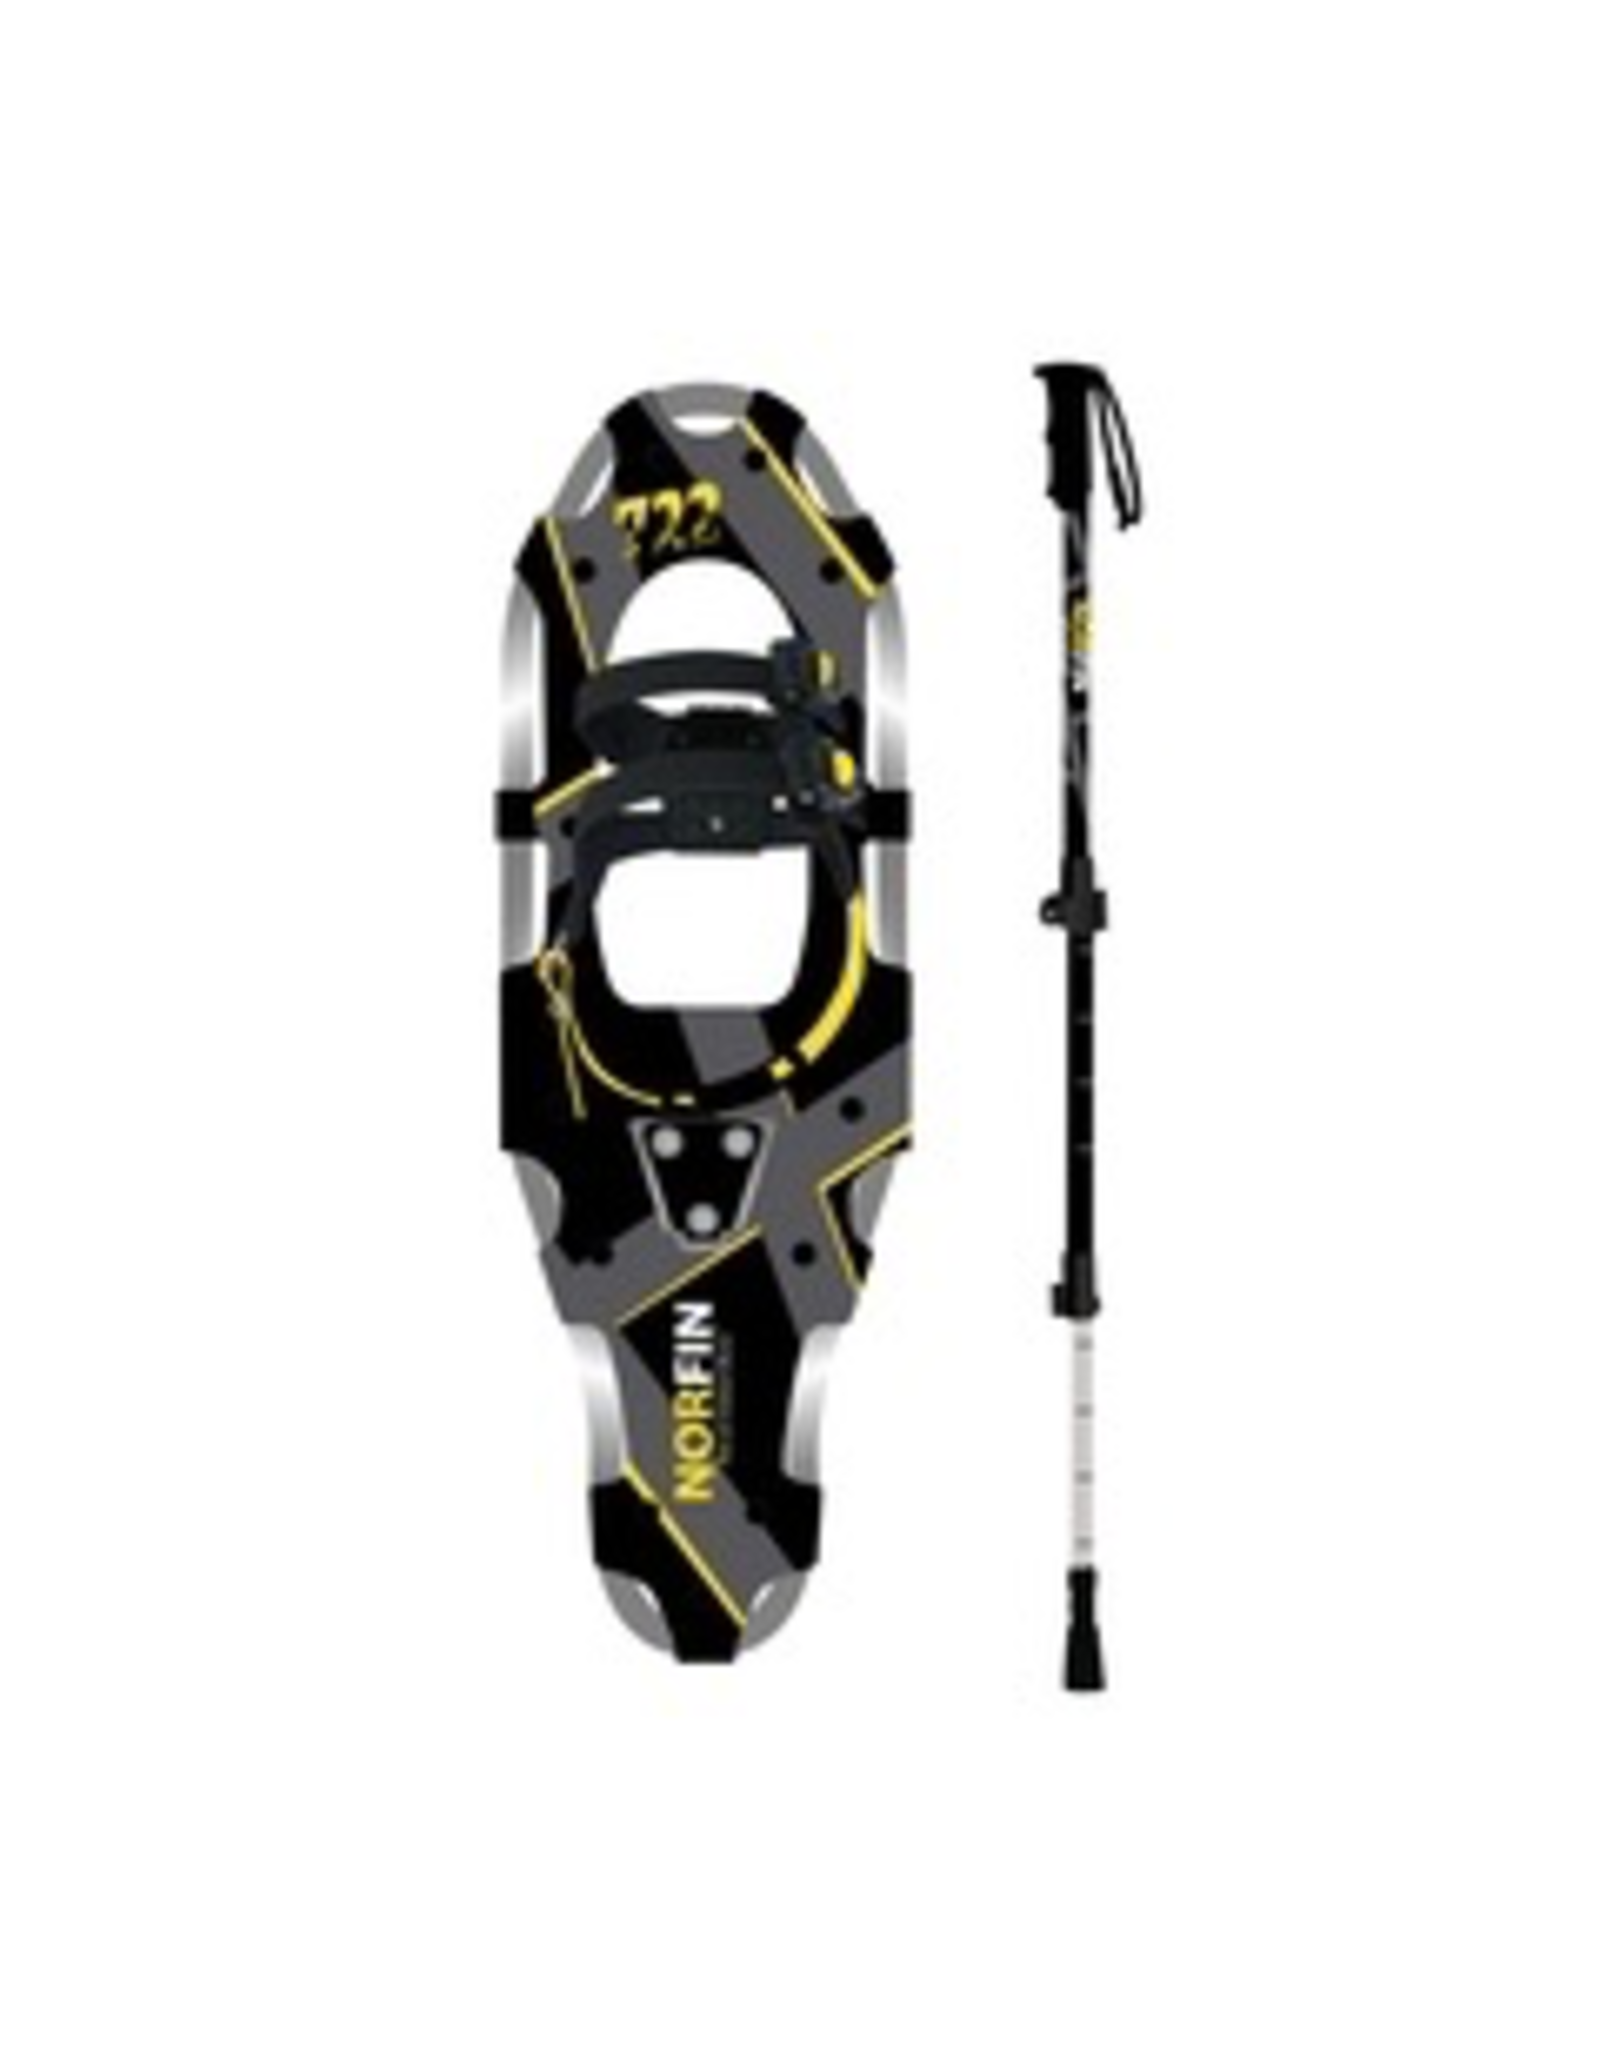 GKS GKS Norfin Unisex Snowshoes / Pole Kit (100-175 lbs)